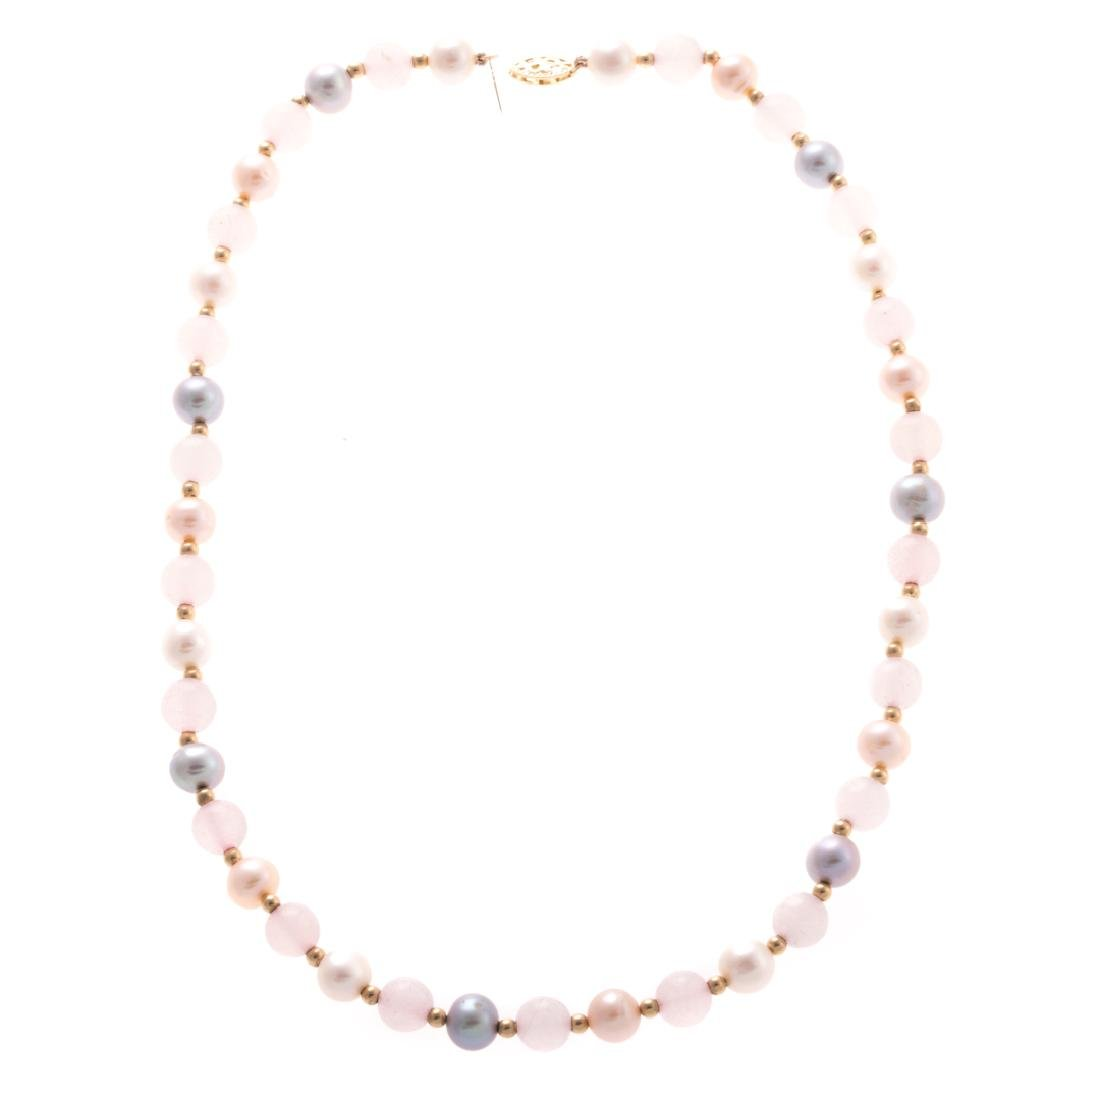 A Lady's Pearl Beaded Necklace with Pearl Earrings - 3